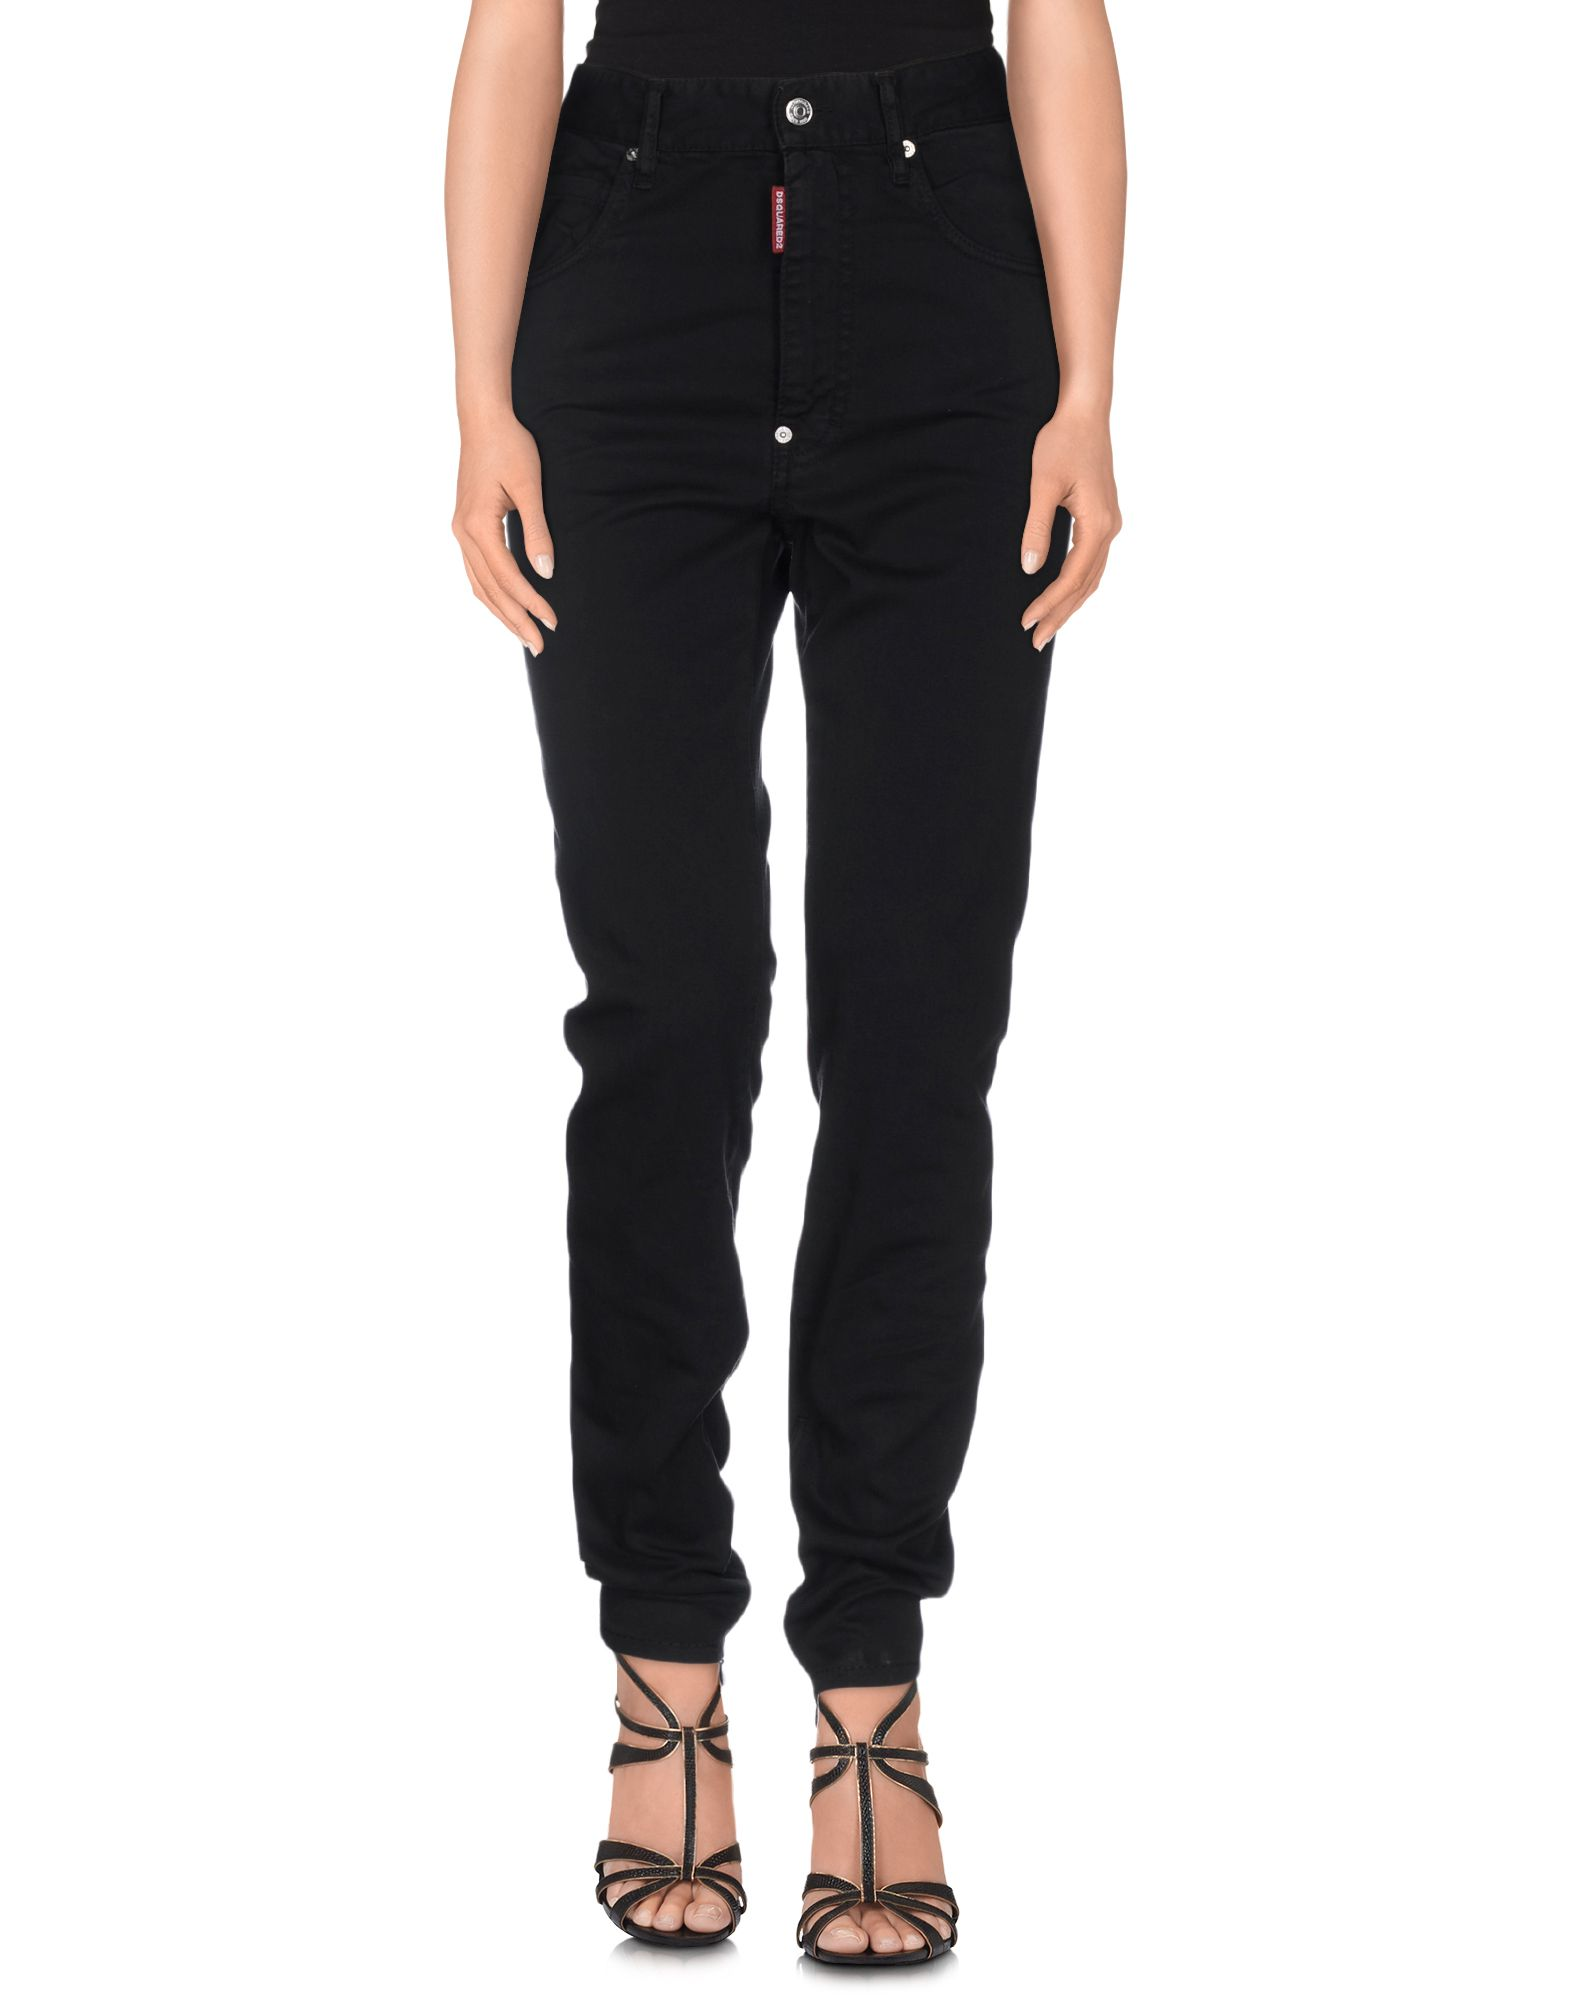 Pantaloni Jeans Dsquared2 Donna - Acquista online su TFC5BNG